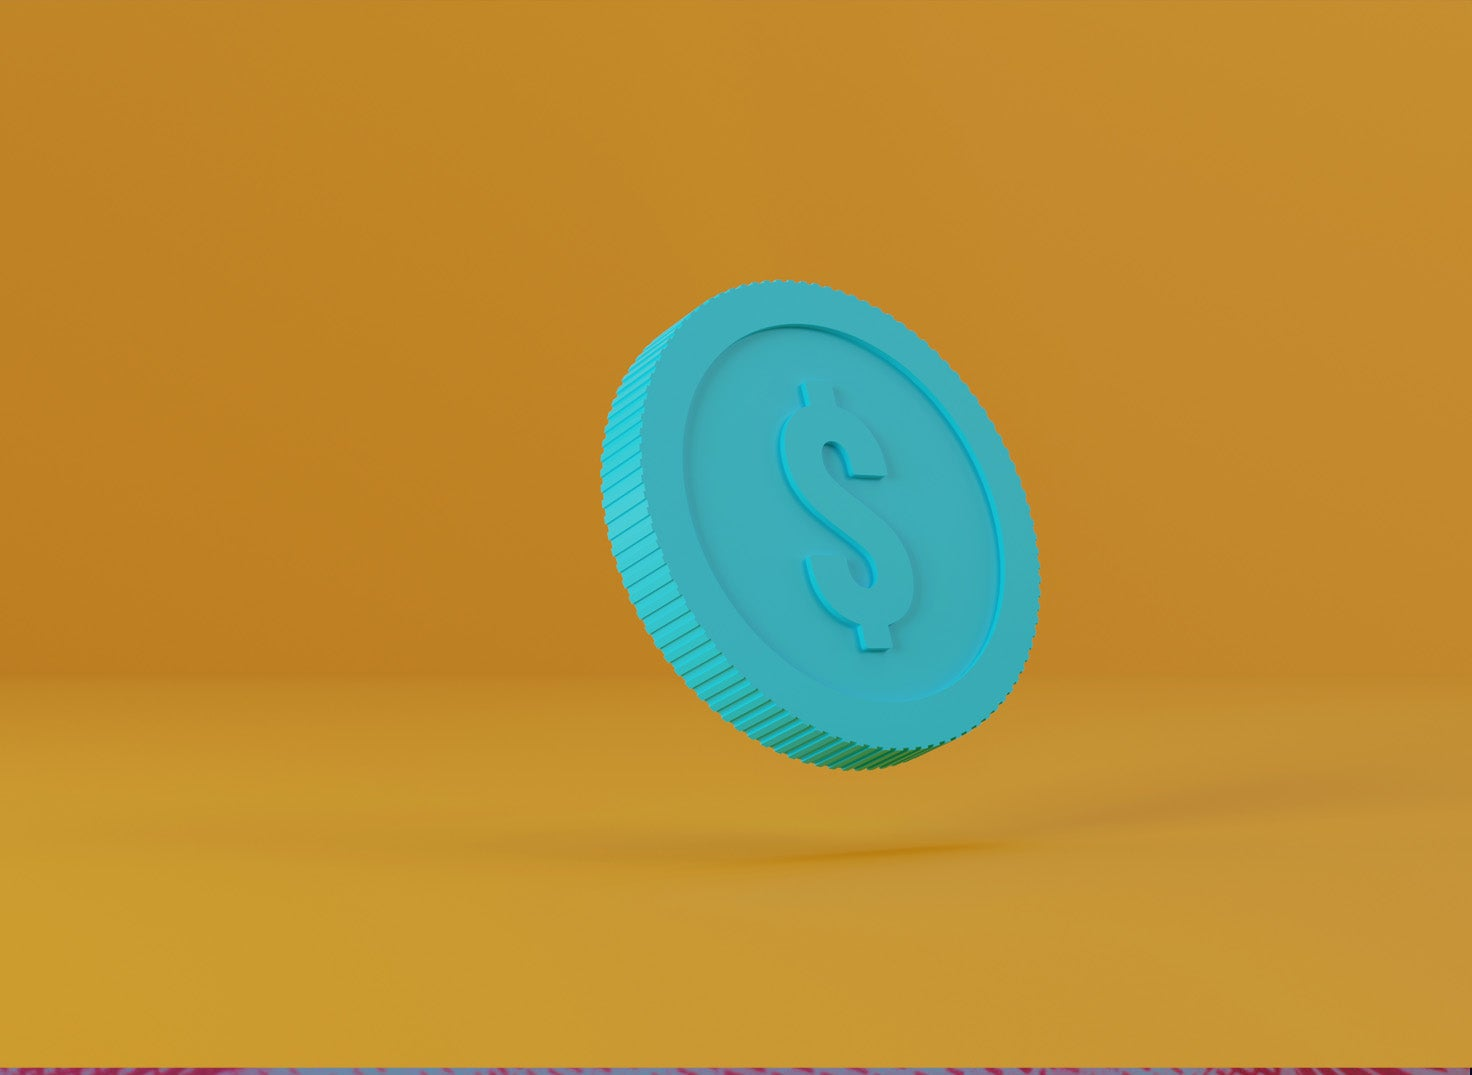 floating coin